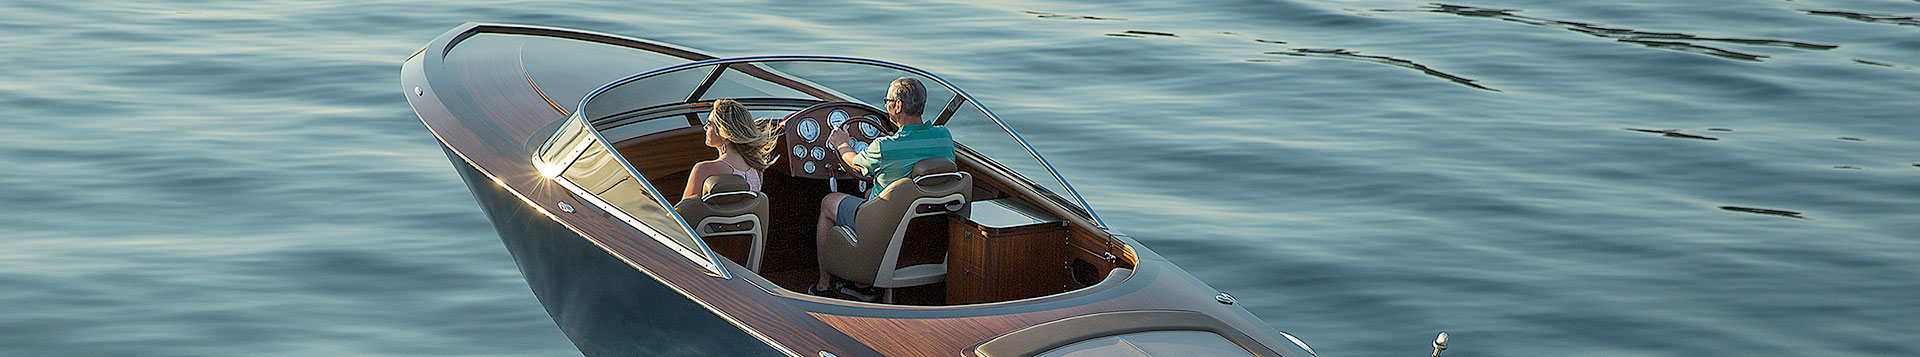 Prepare your wood boat for summer with annual spring maintenance